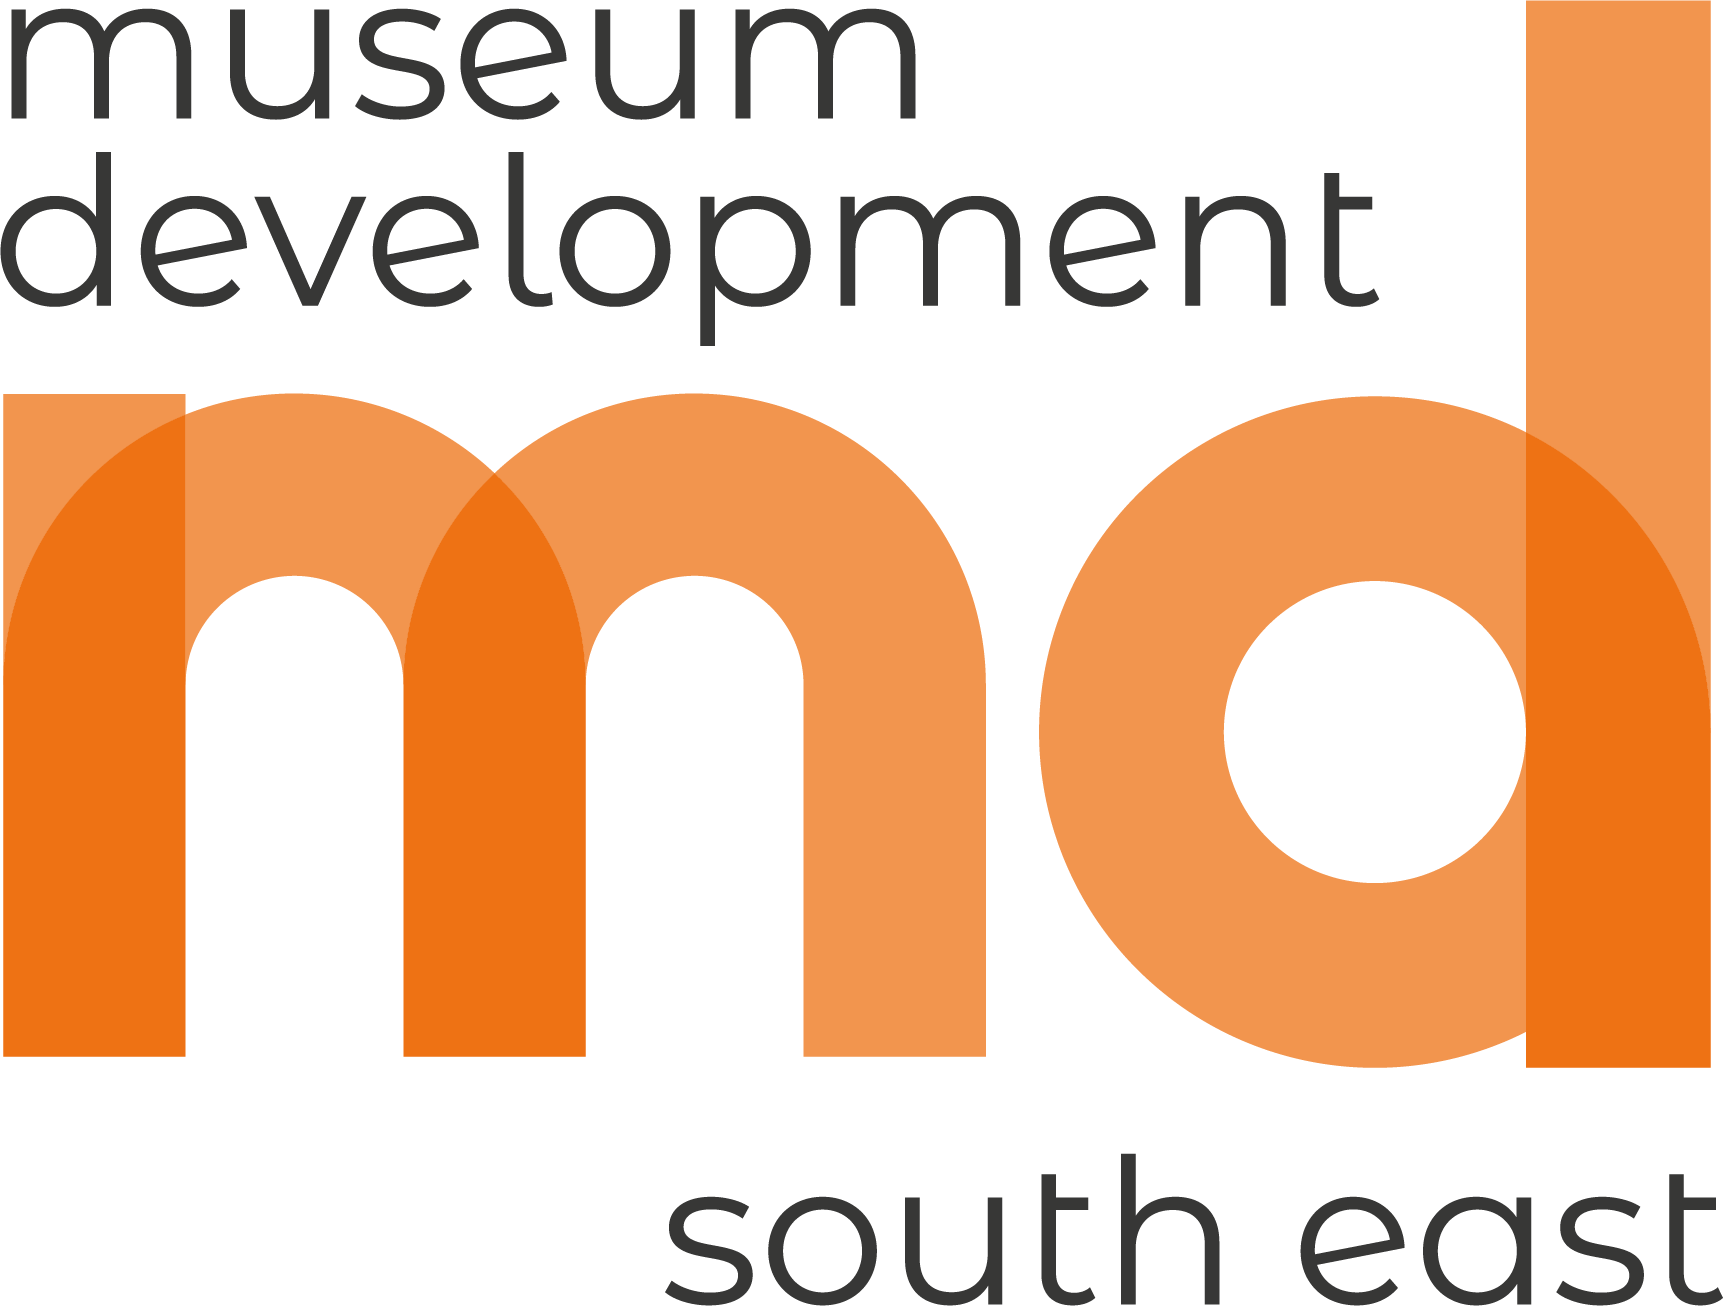 south east museum development logo